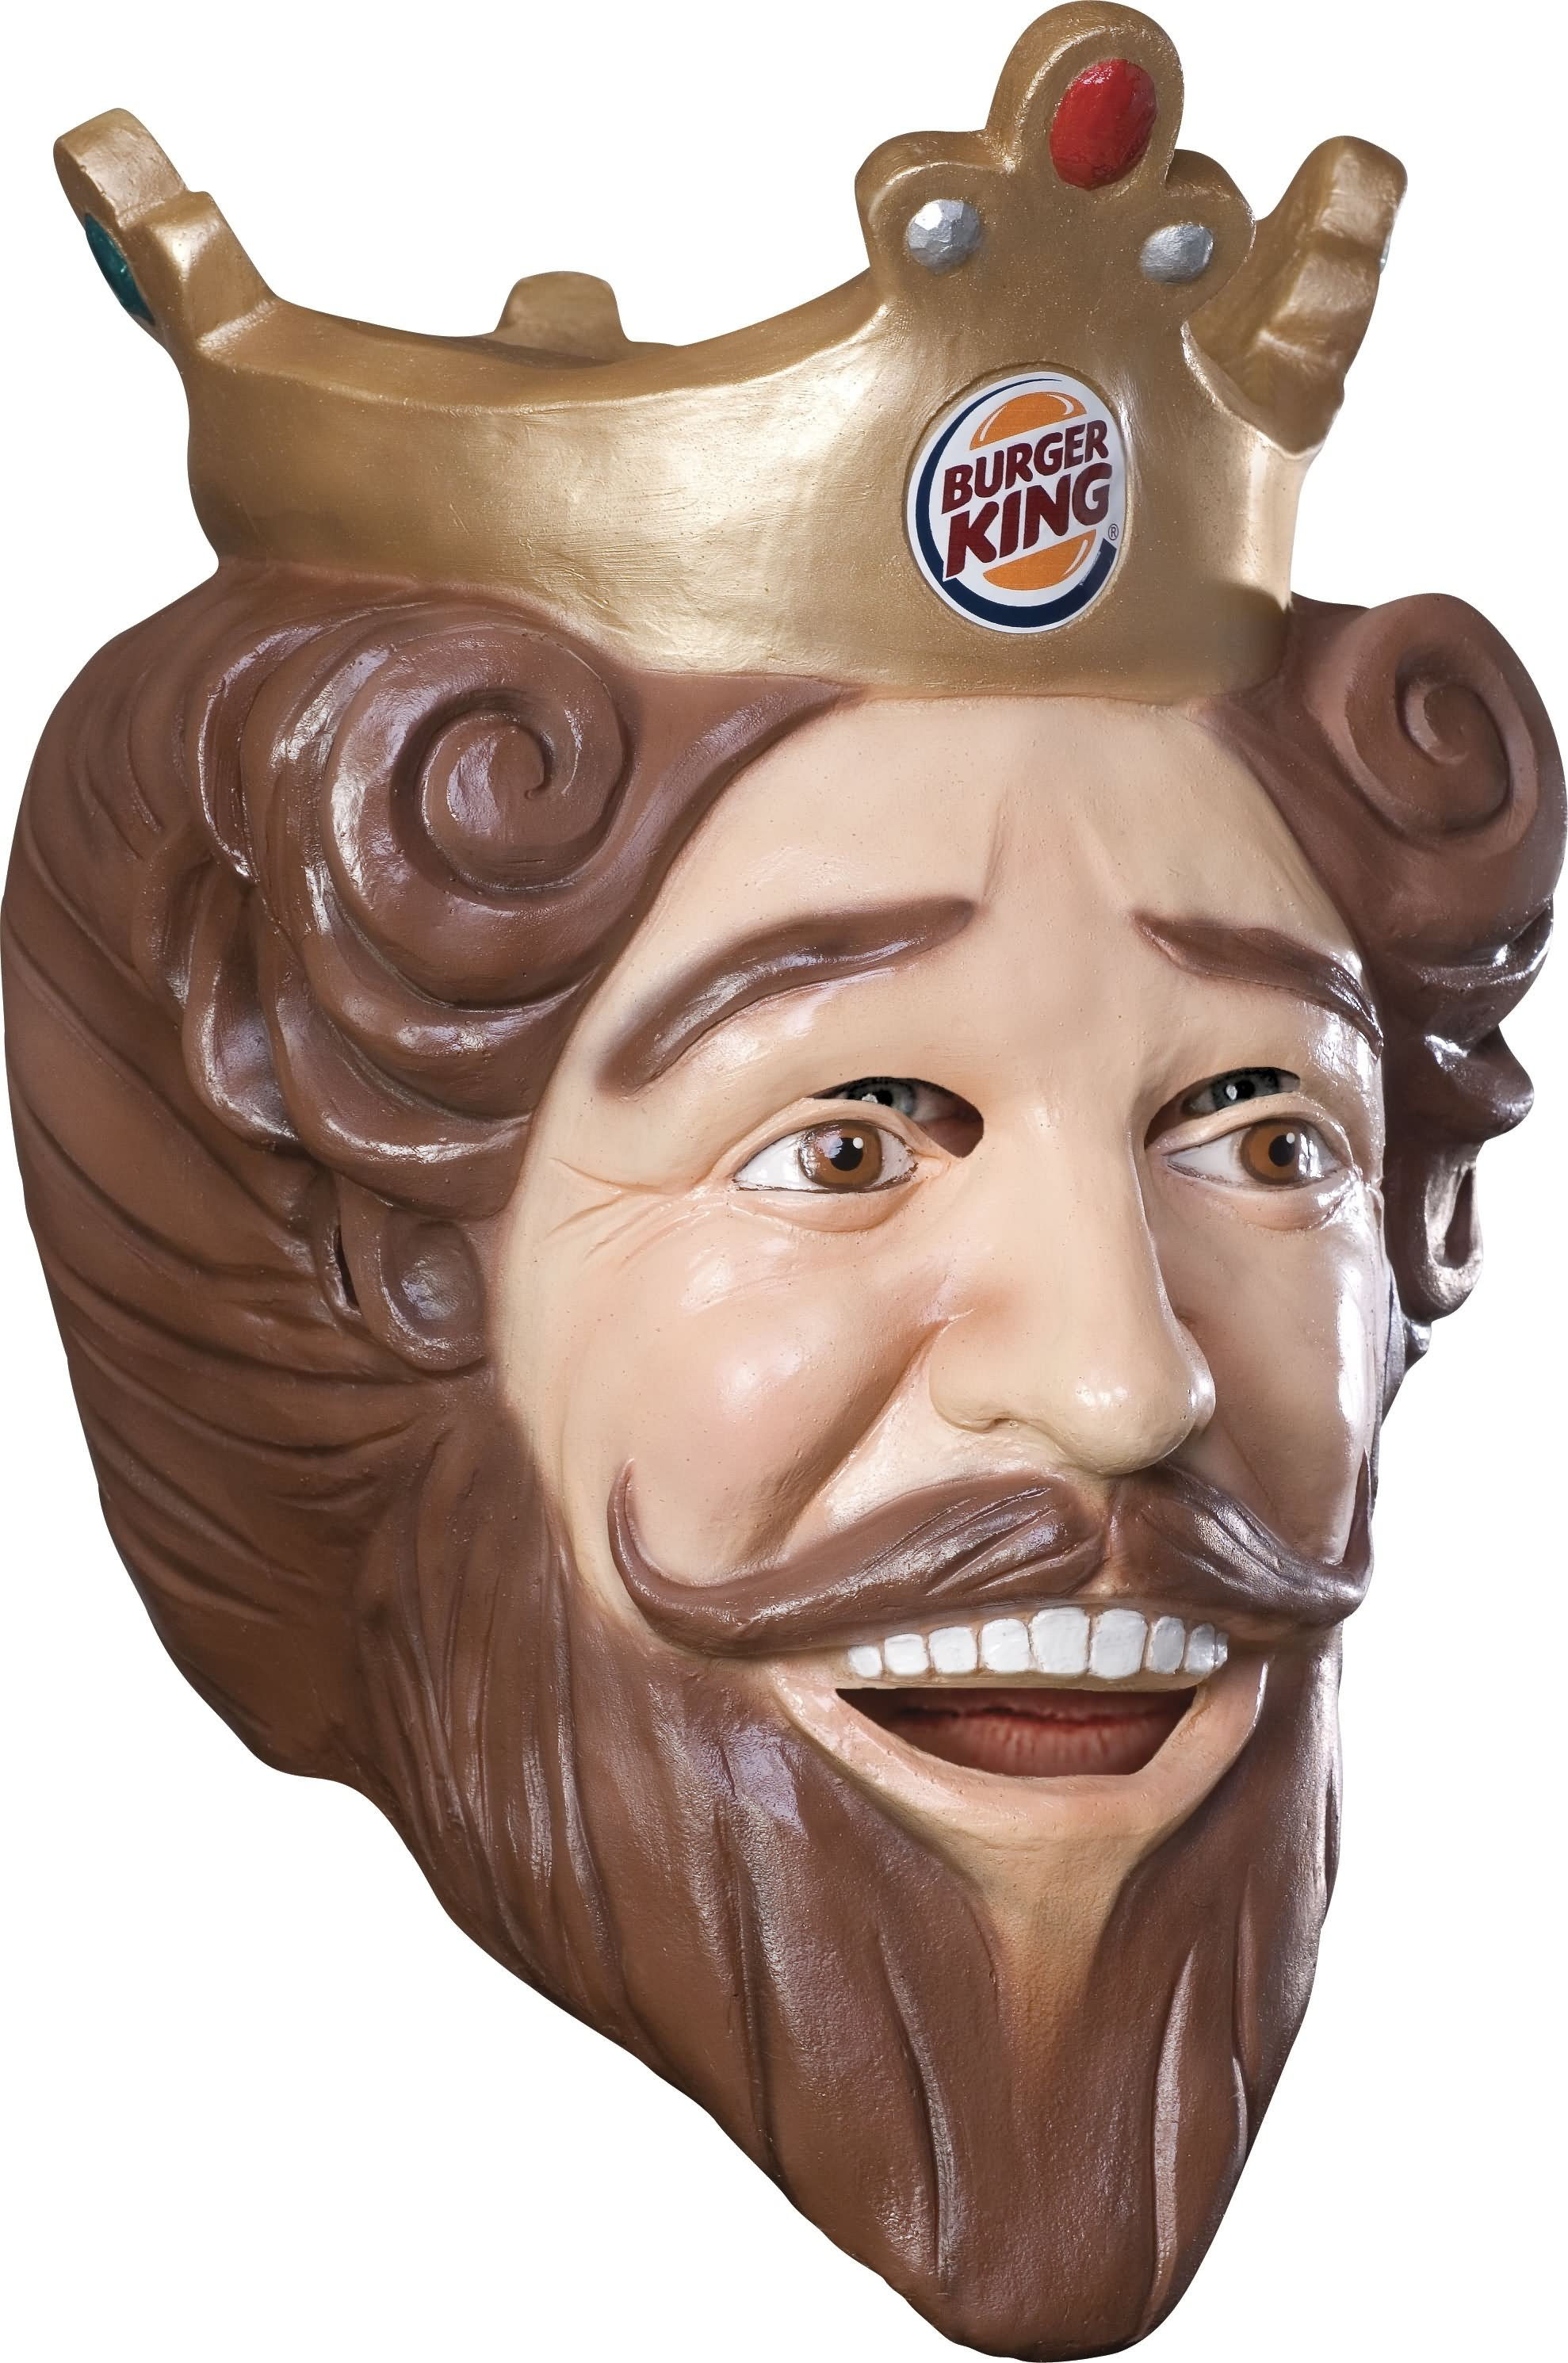 burger king funny mask picture